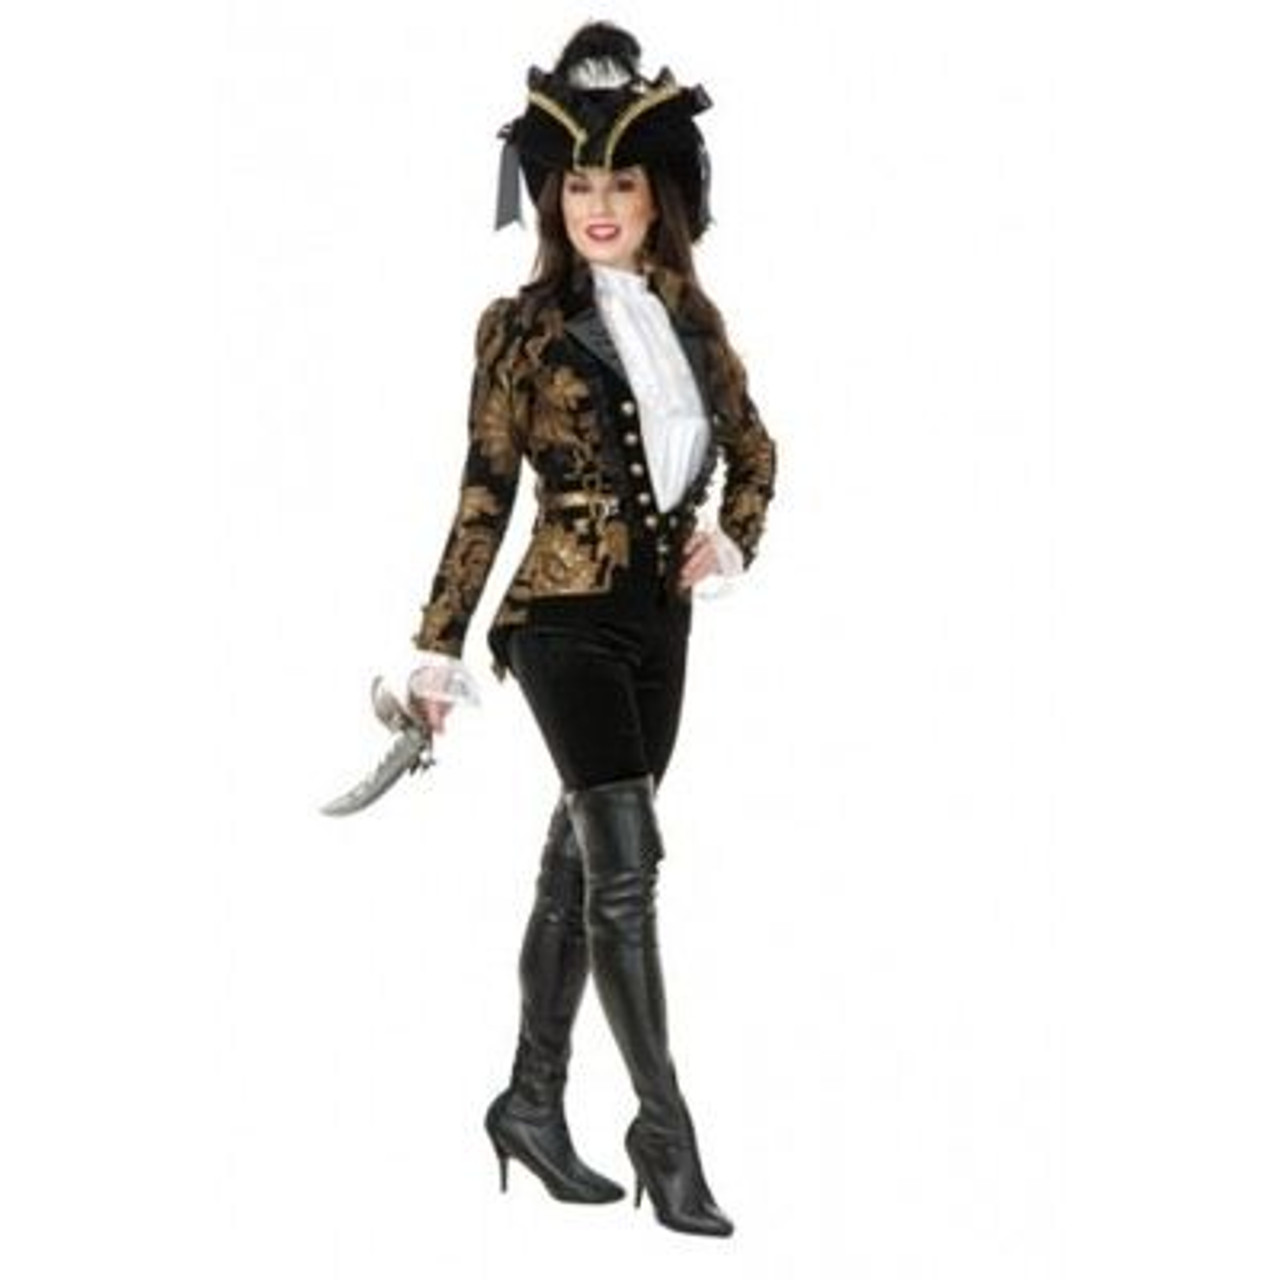 BLACK PIRATE BOOT TOPS thigh high faux suede adult womens halloween costume  S/M